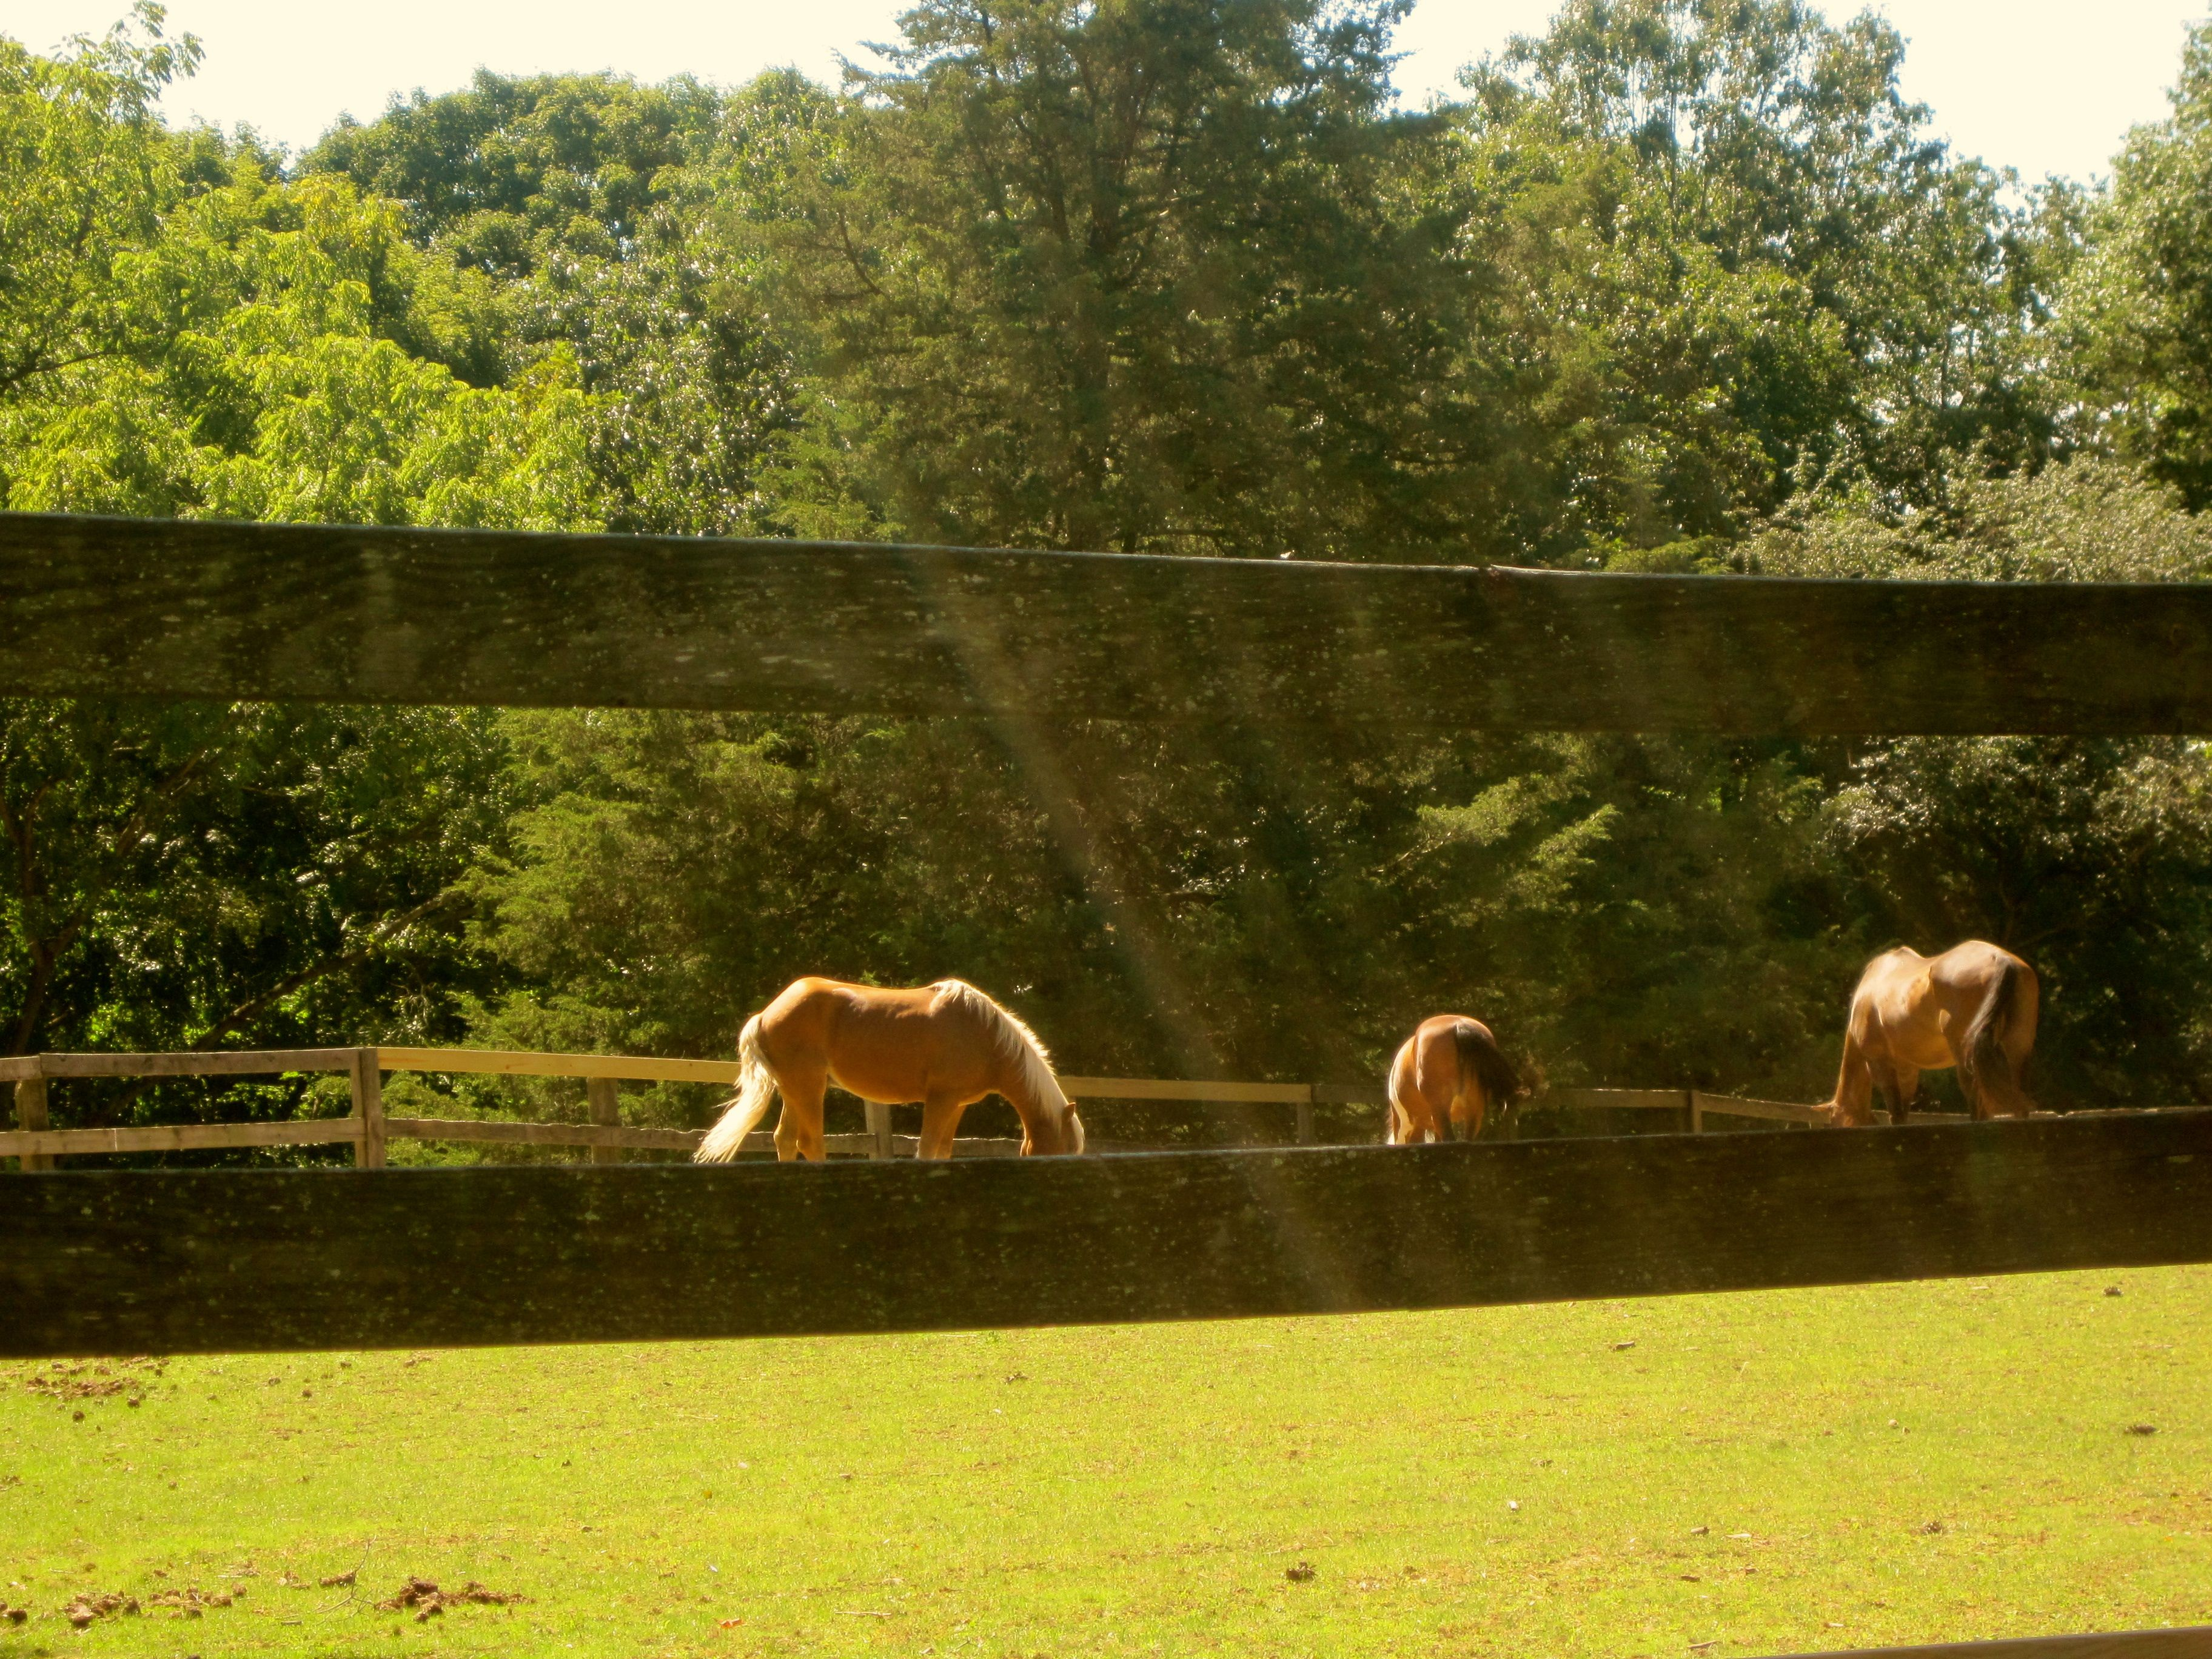 Ray of Light Over Horses.....A Serene Moment in Time, taken in upstate NY on one of my Sunday drives this Spring :)